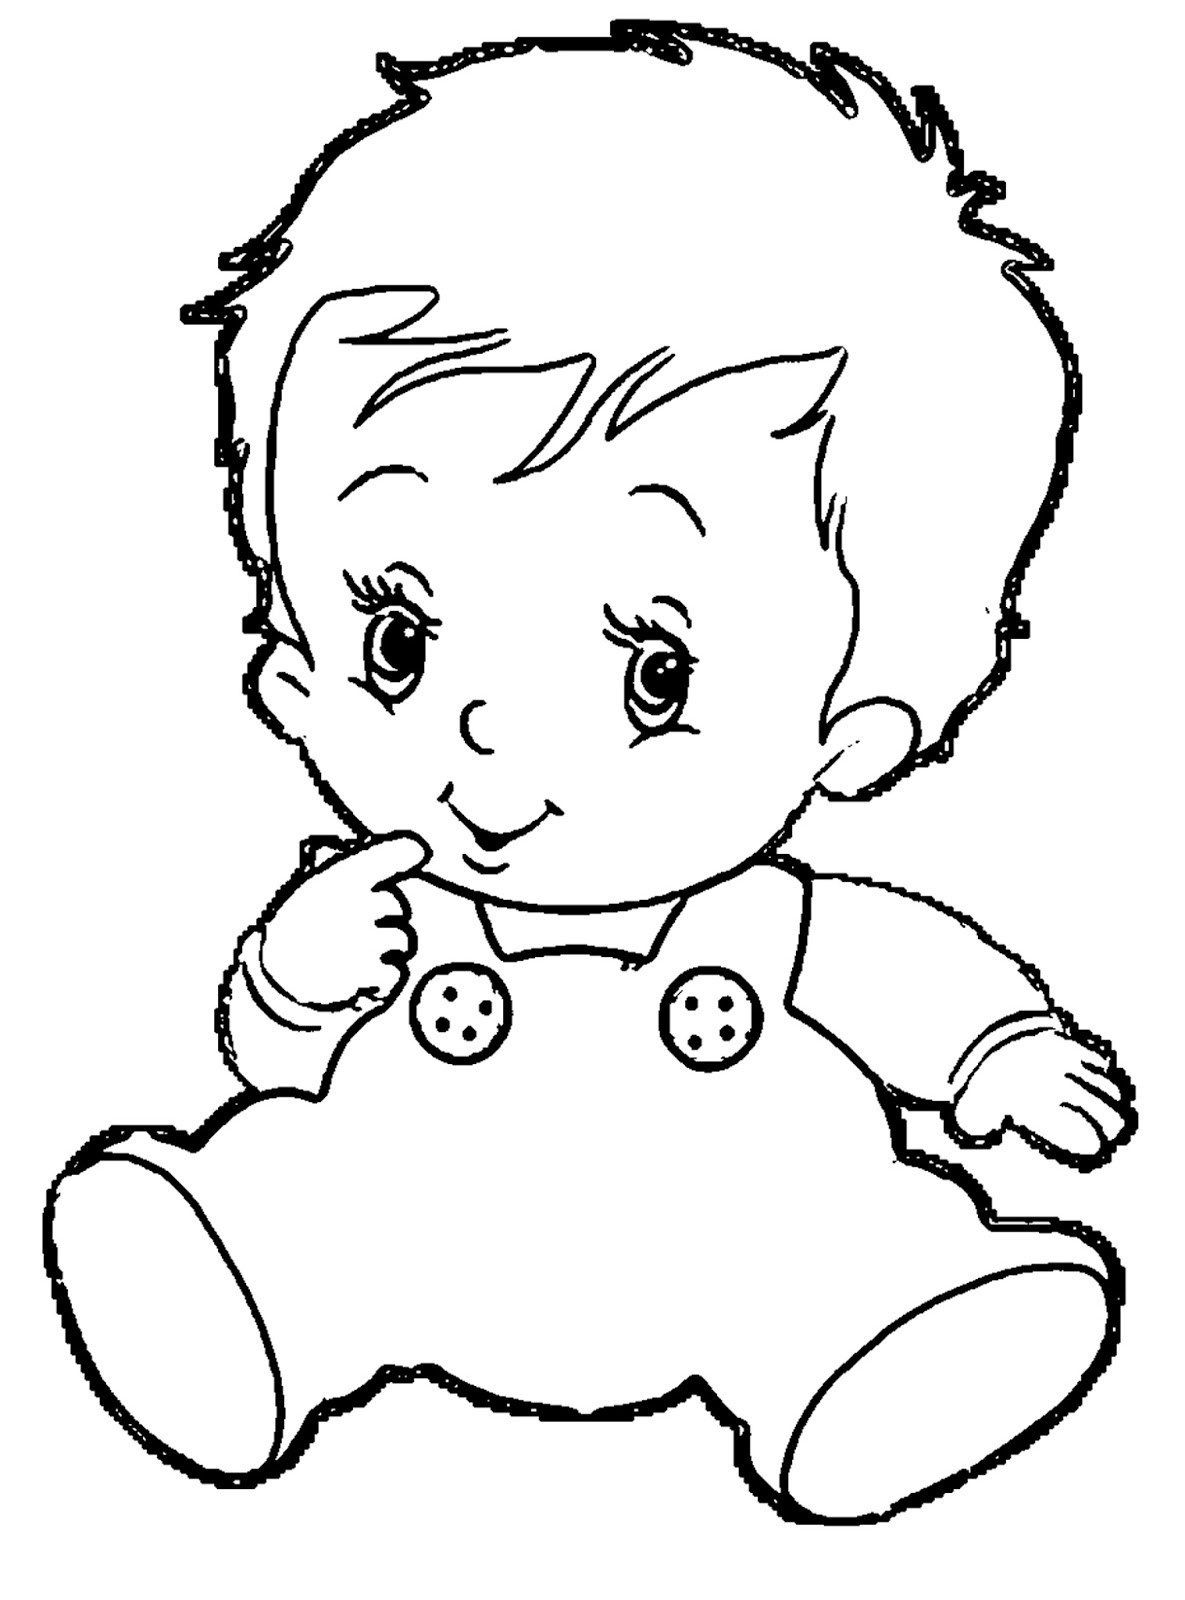 Black baby playing with white baby clipart graphic transparent New Baby Clipart Black And White Gallery Digital Newborn Toys - Empoto graphic transparent